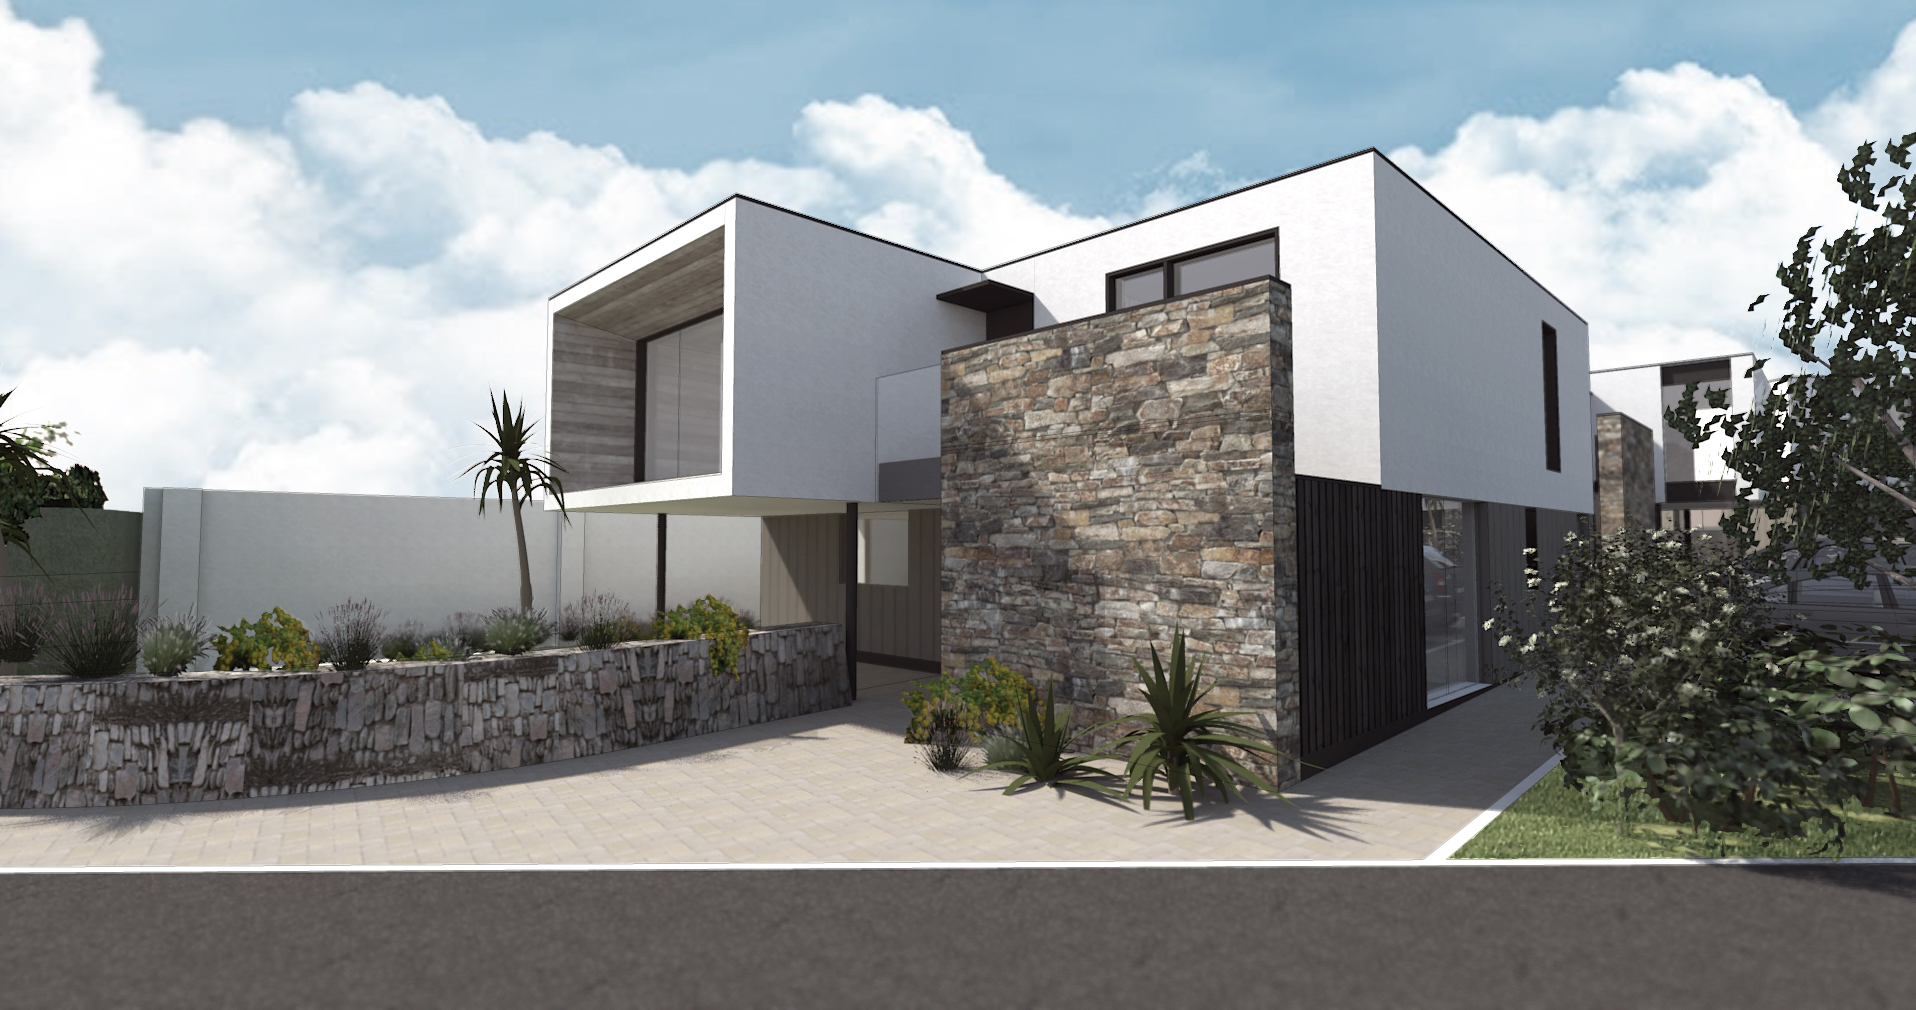 Designed by ARCO2 in Trebetherick Cornwall